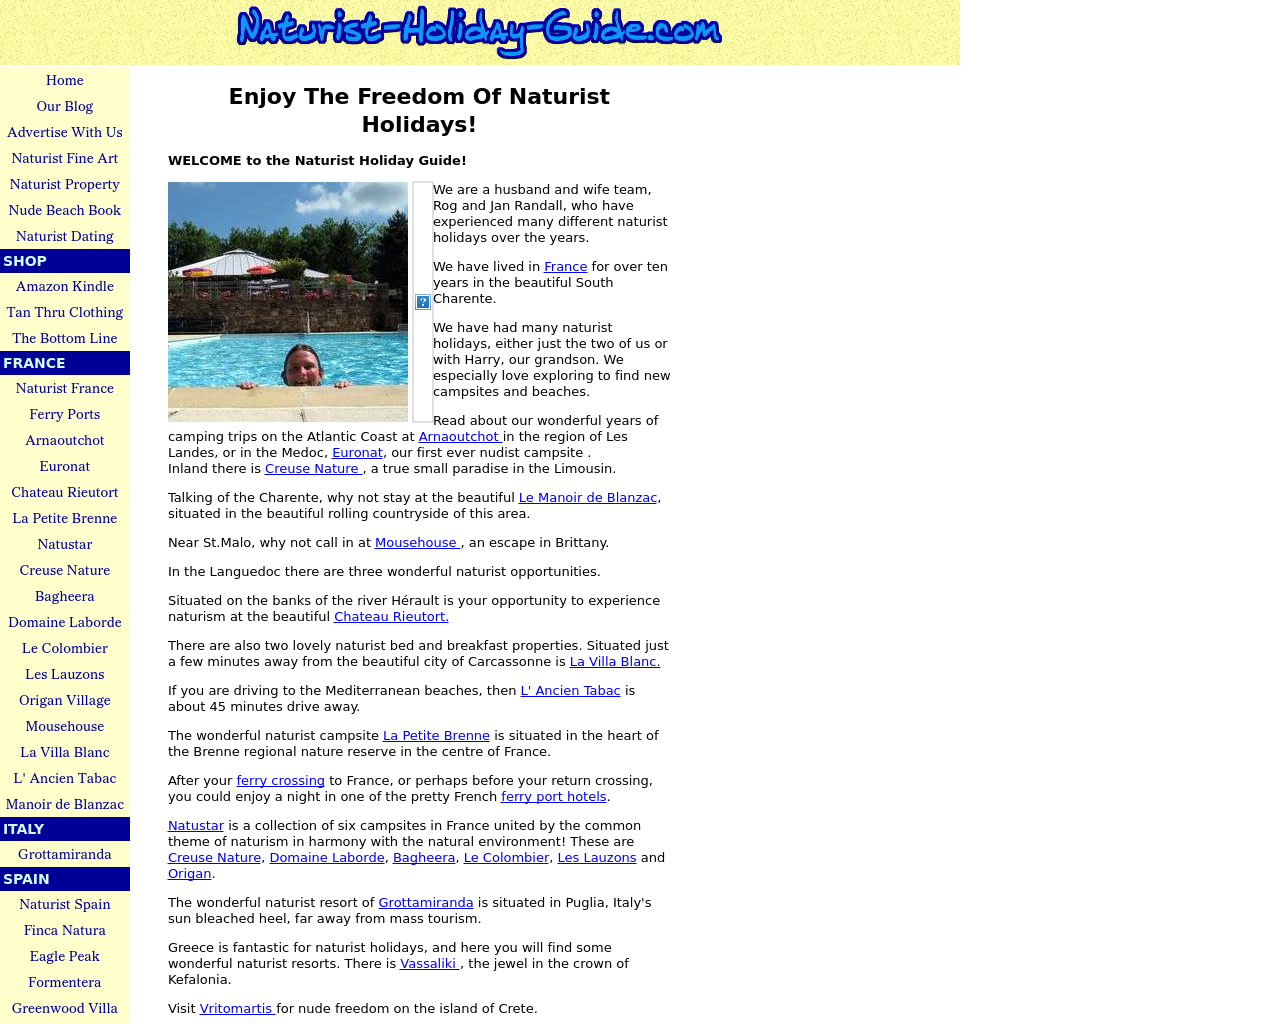 Naturist-Holiday-Guide-Advertising-Reviews-Pricing